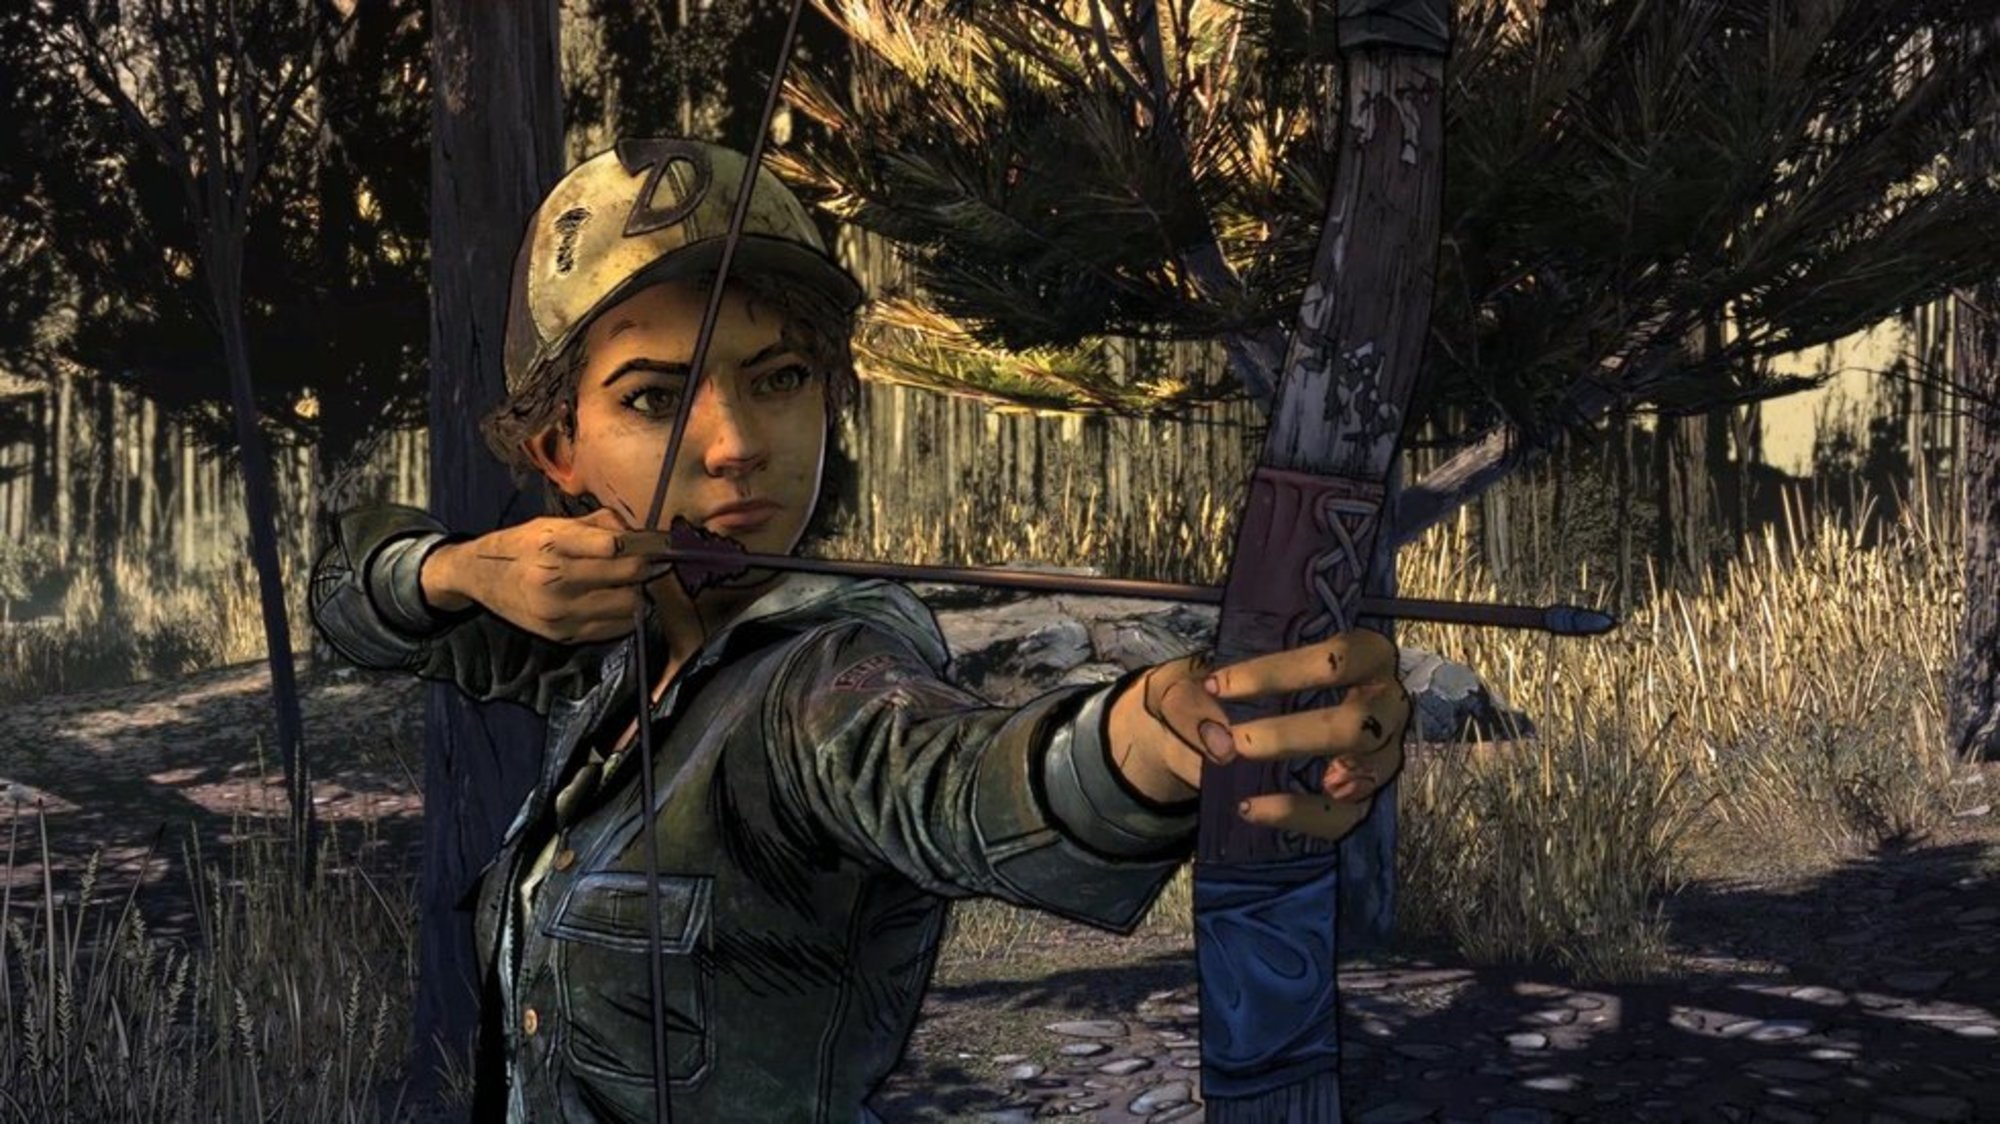 Girl with a bow in arrow in The Walking Dead video game